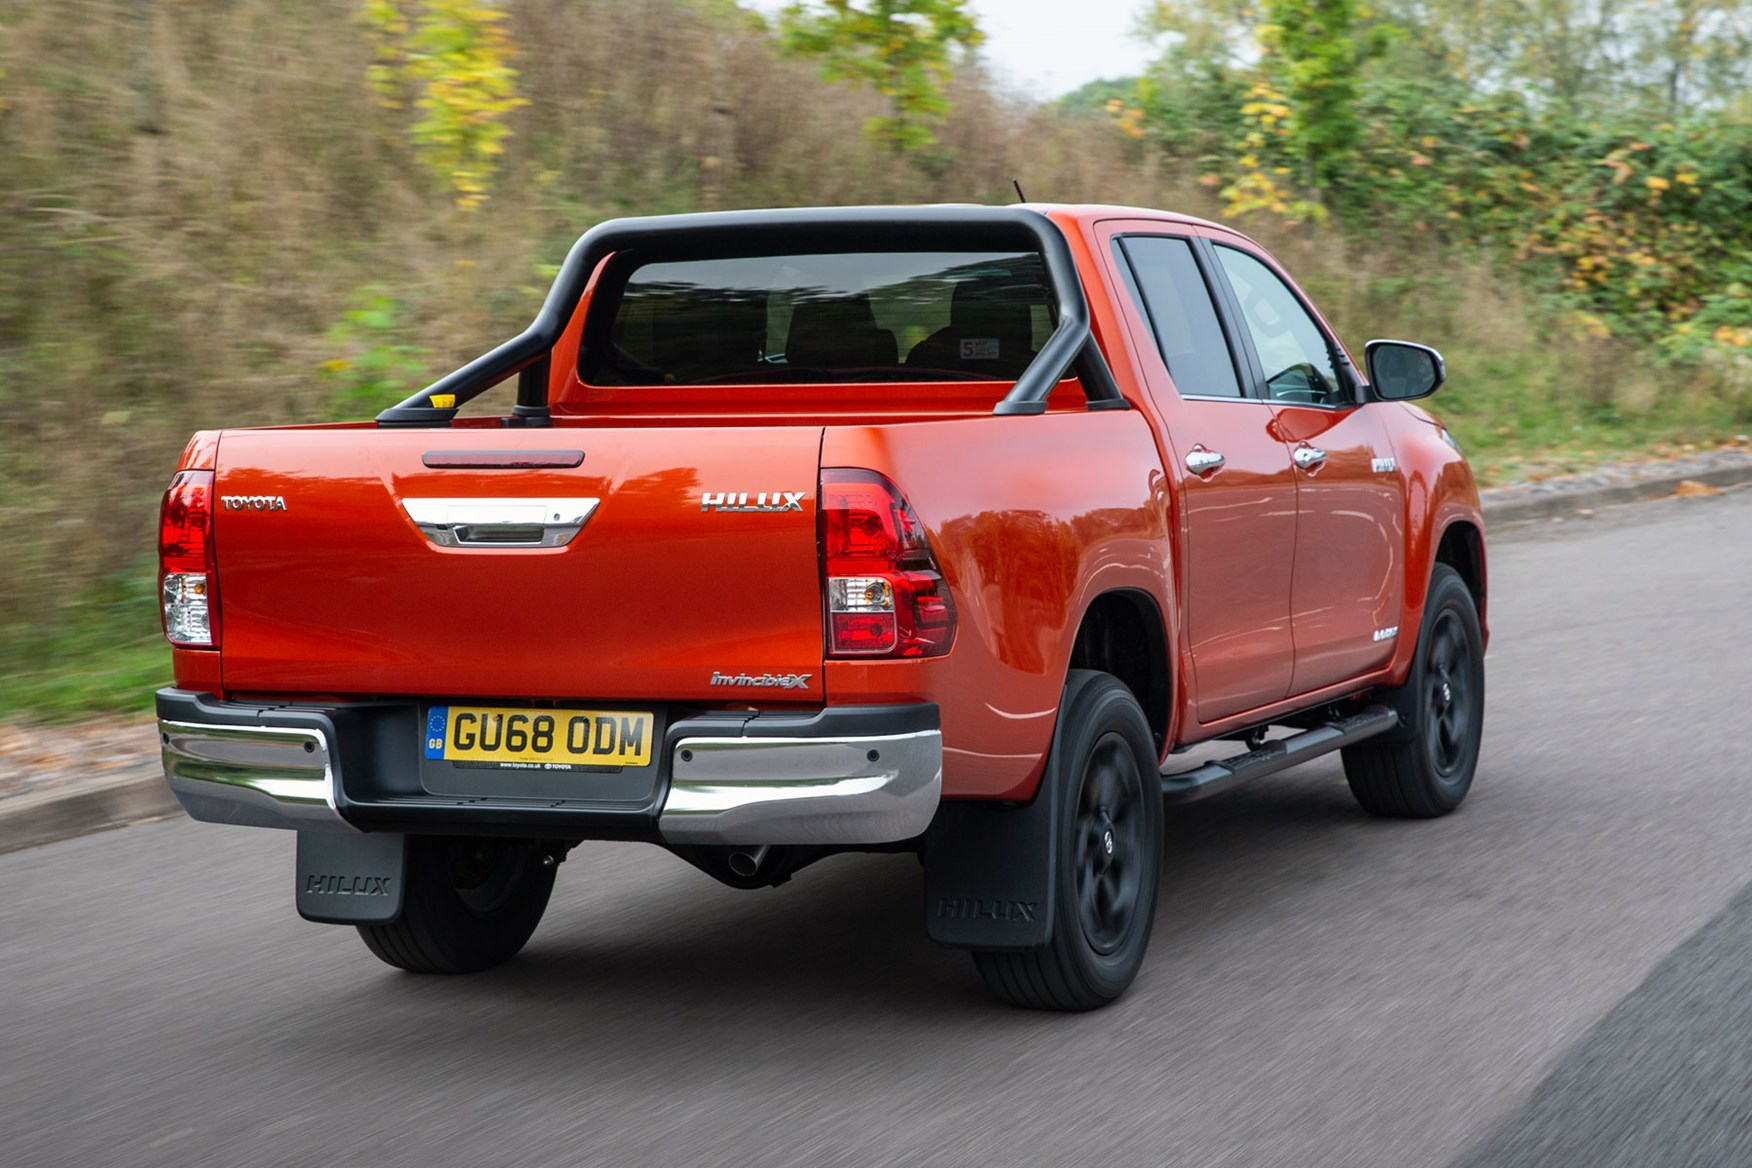 Toyota Hilux review - rear view, driving, Invincible X, orange